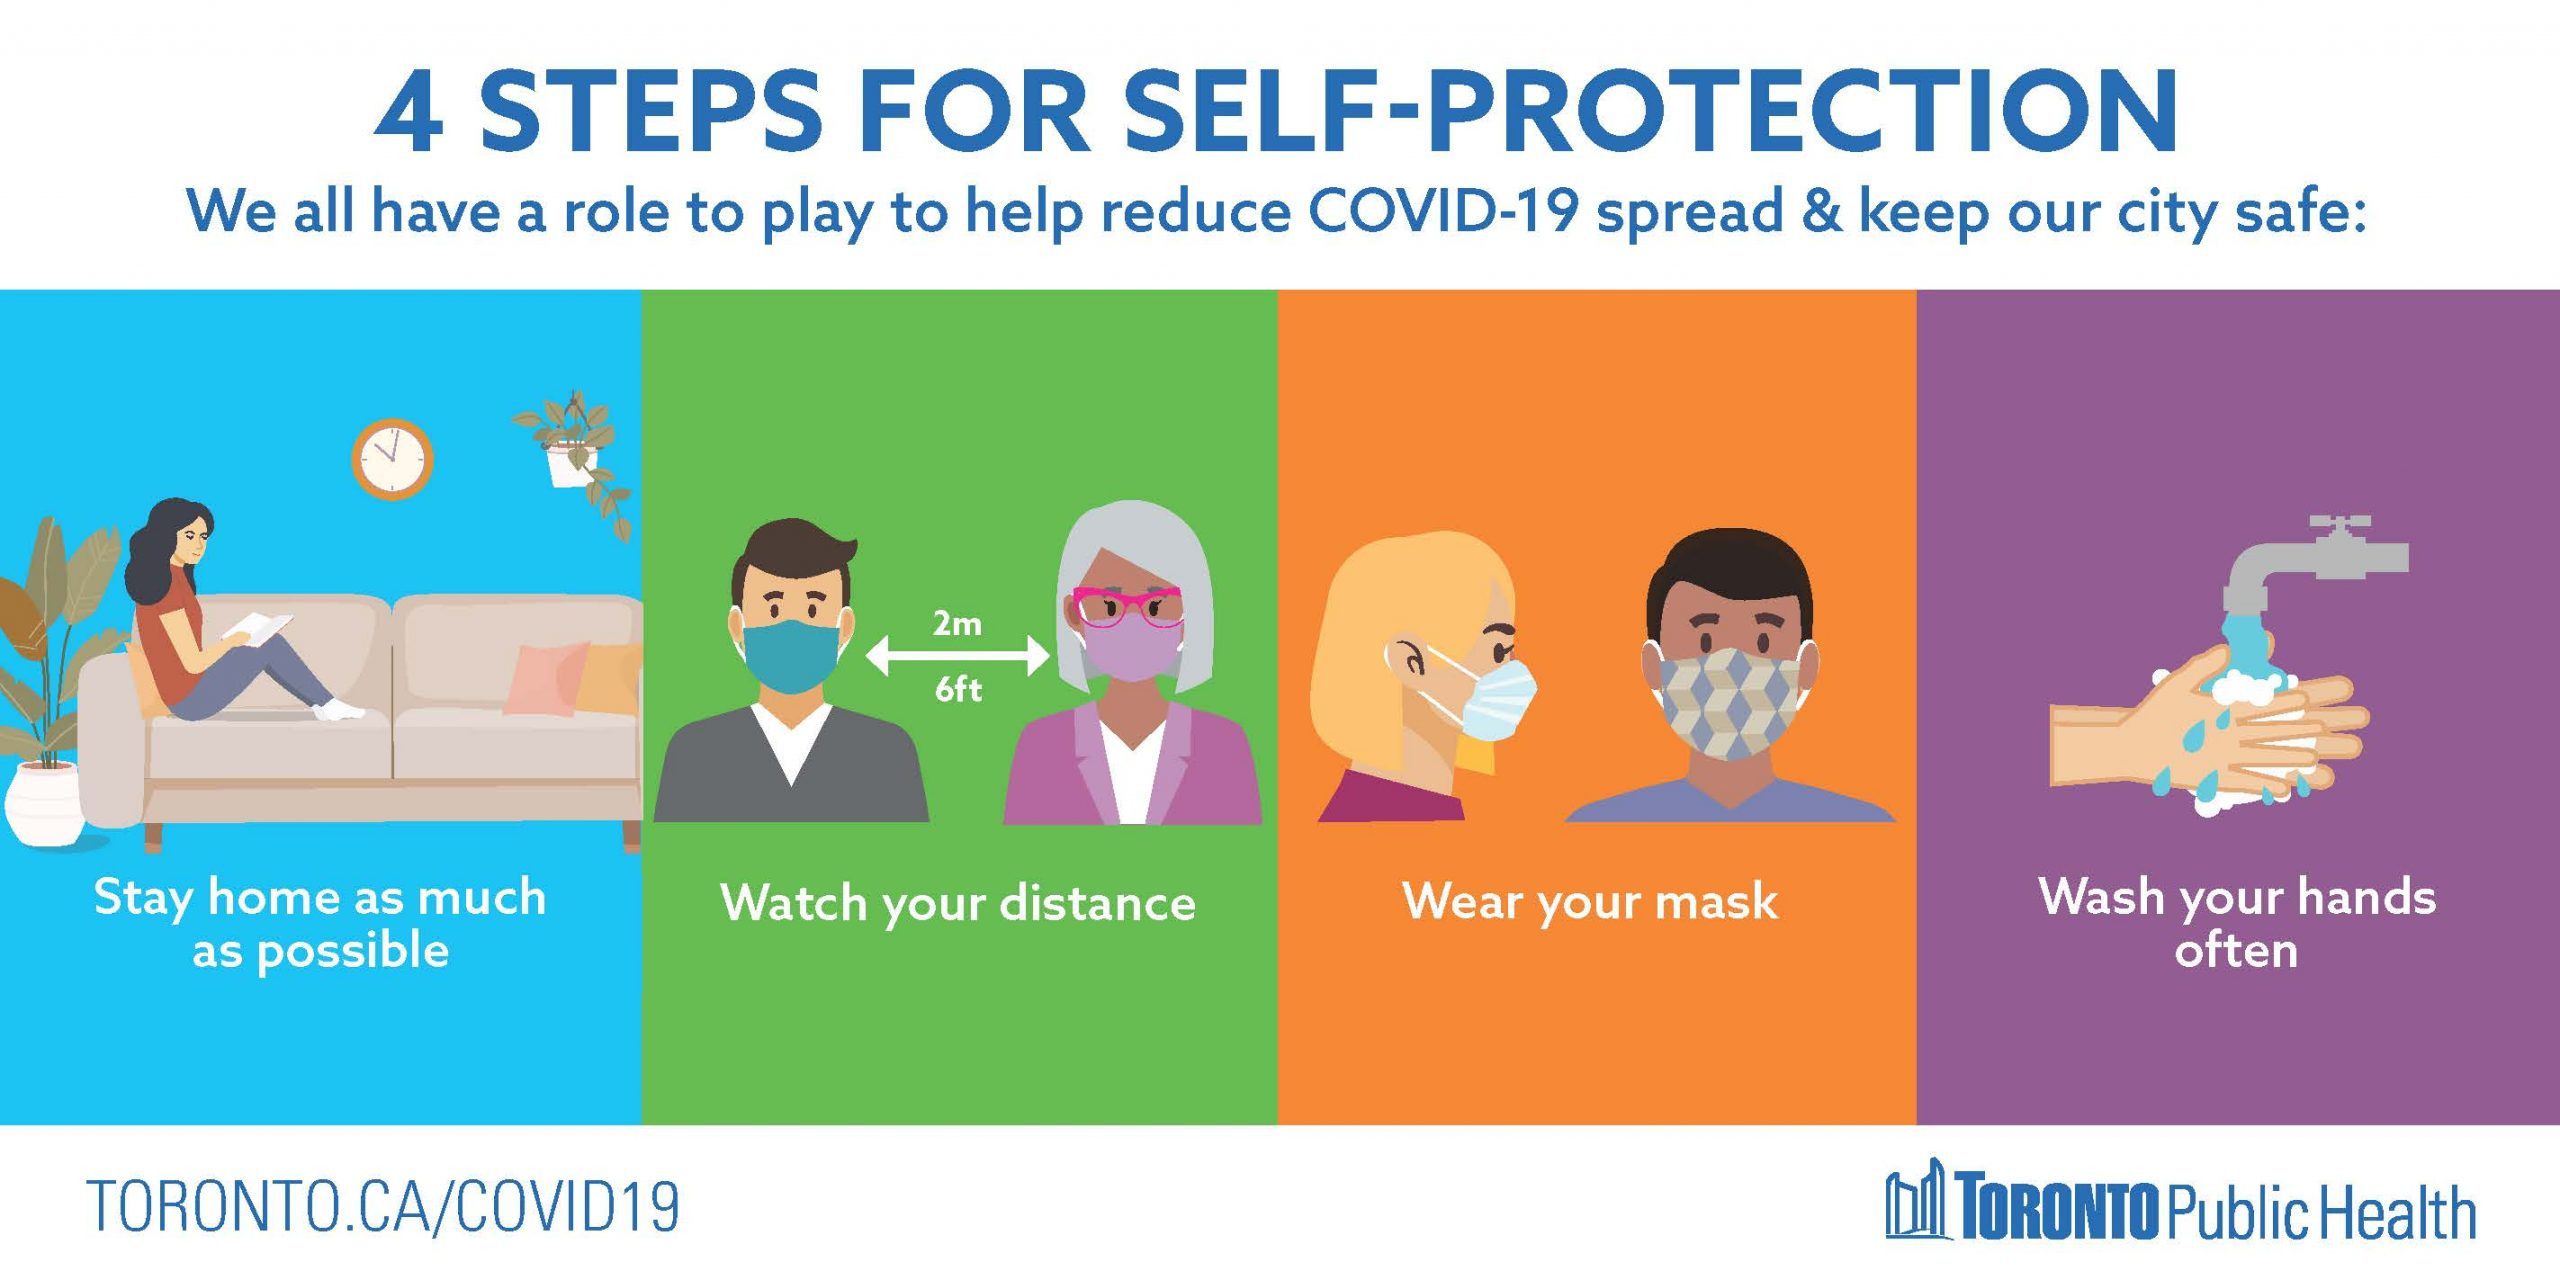 4 steps for self-protection during the COVID-19 pandemic